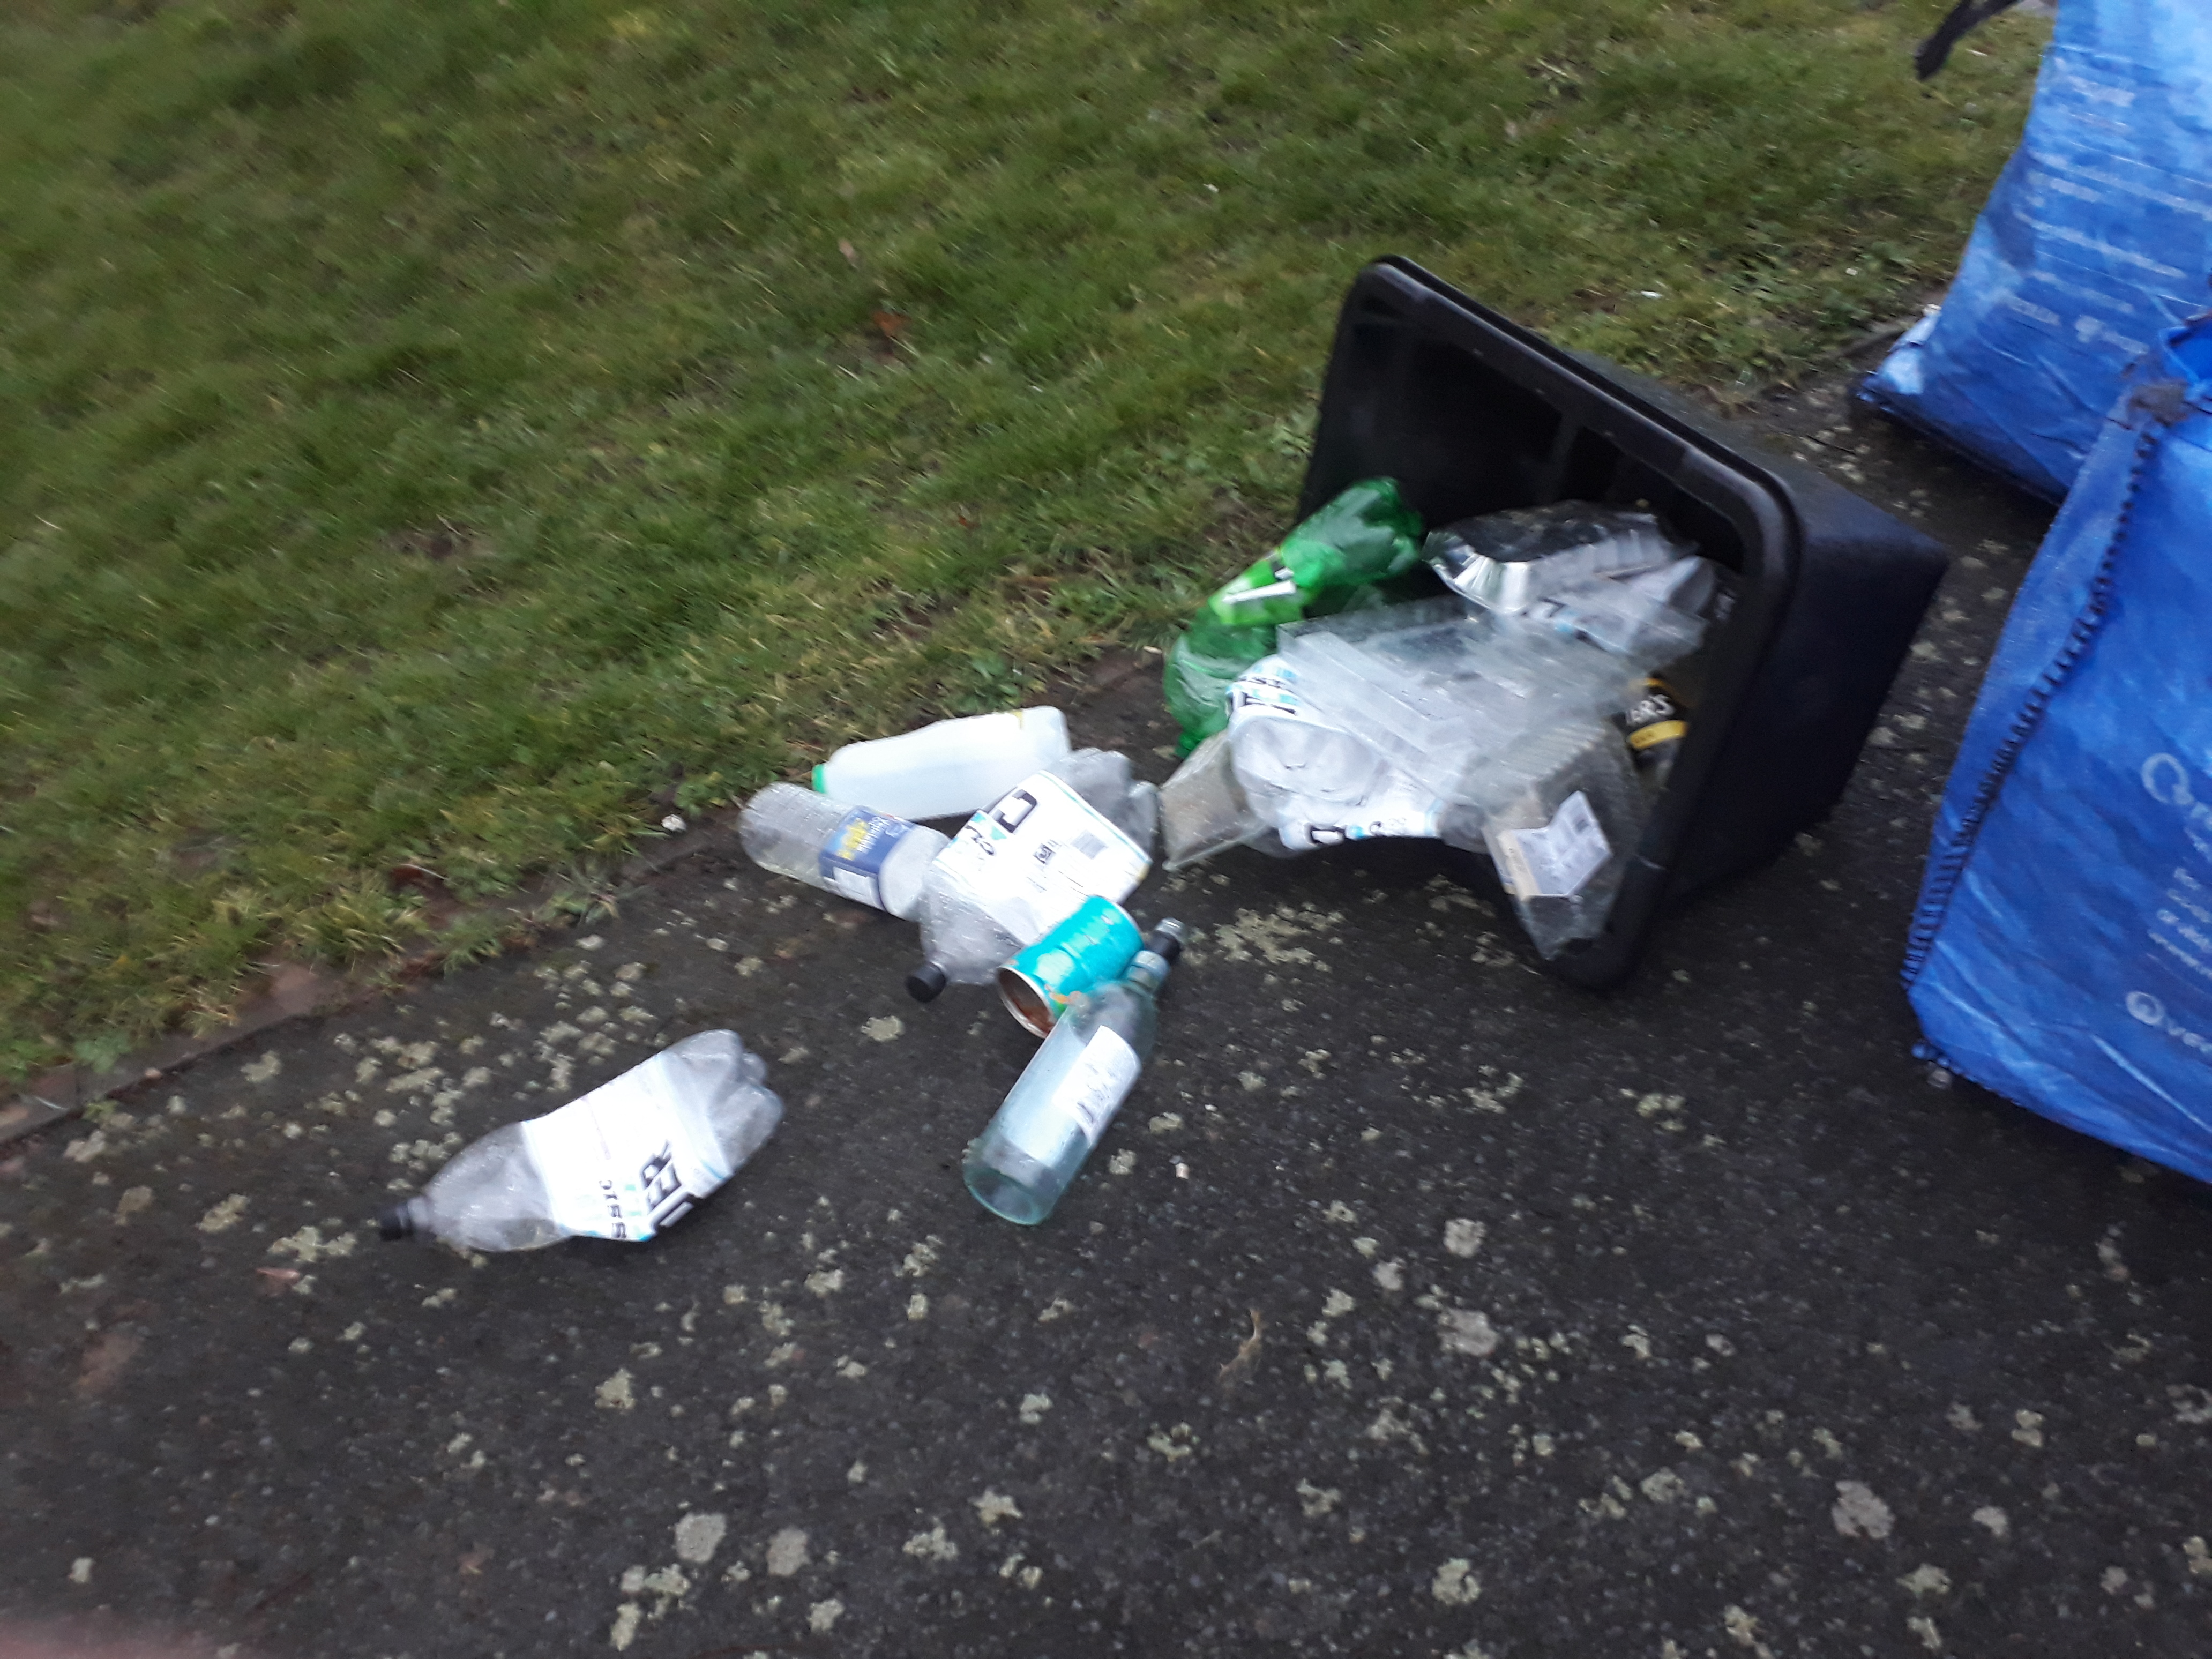 When the wind blows, streets are littered with recycling – but Shropshire Council refuses simple solutions